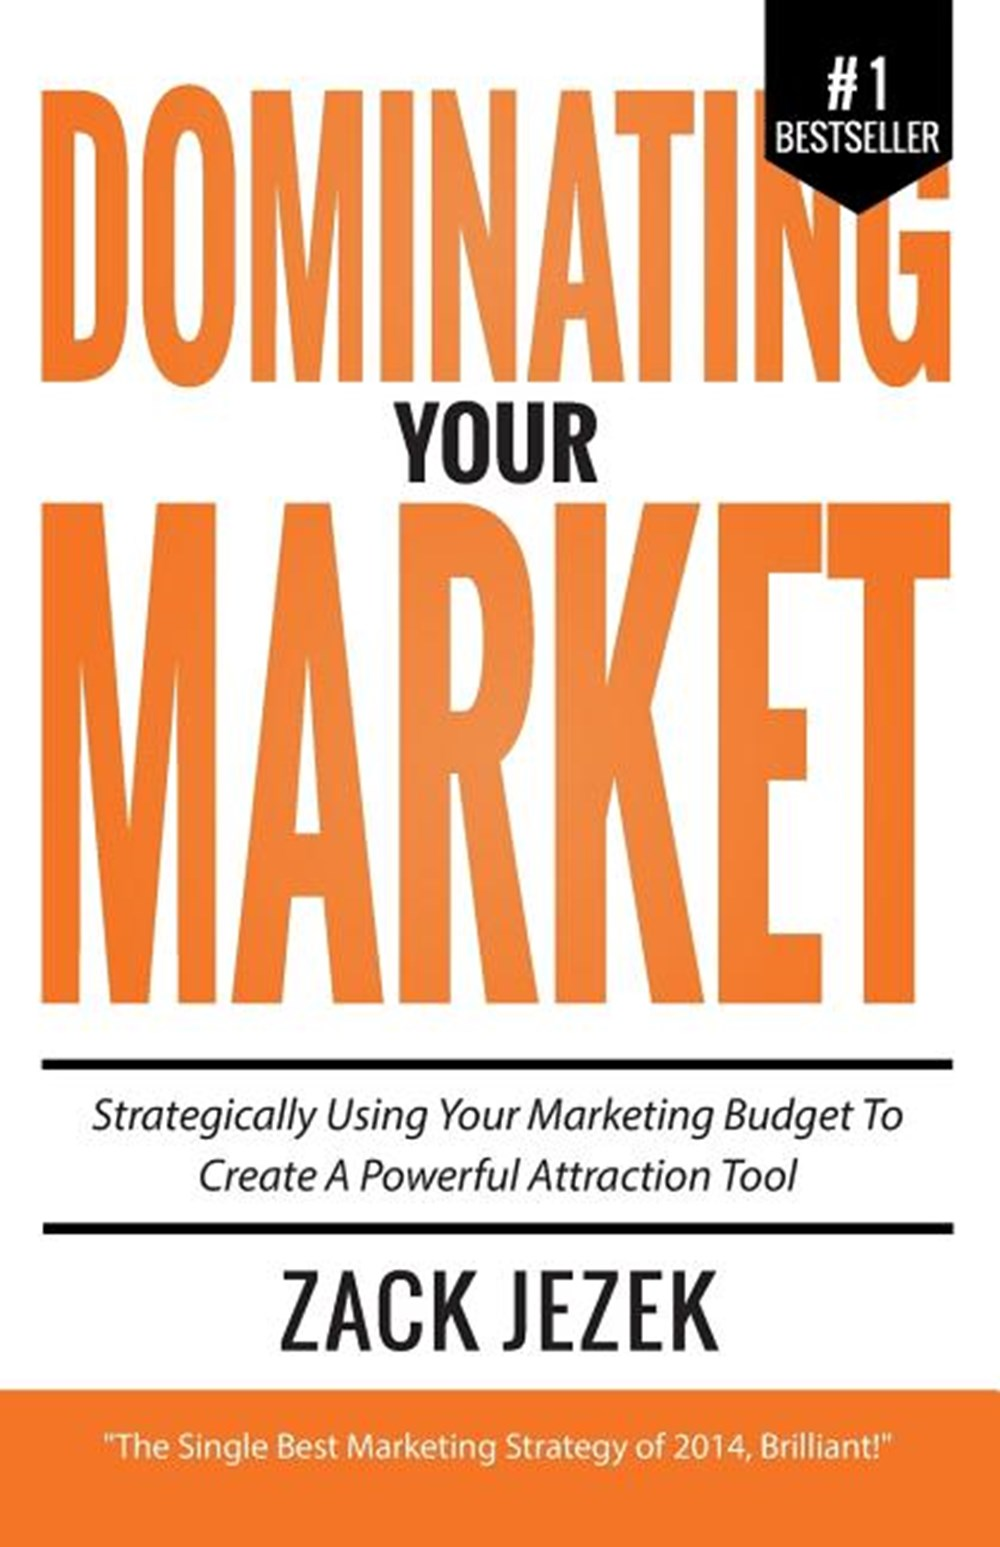 Dominating Your Market Strategically Using Your Marketing Budget to Create a Powerful Attraction Too